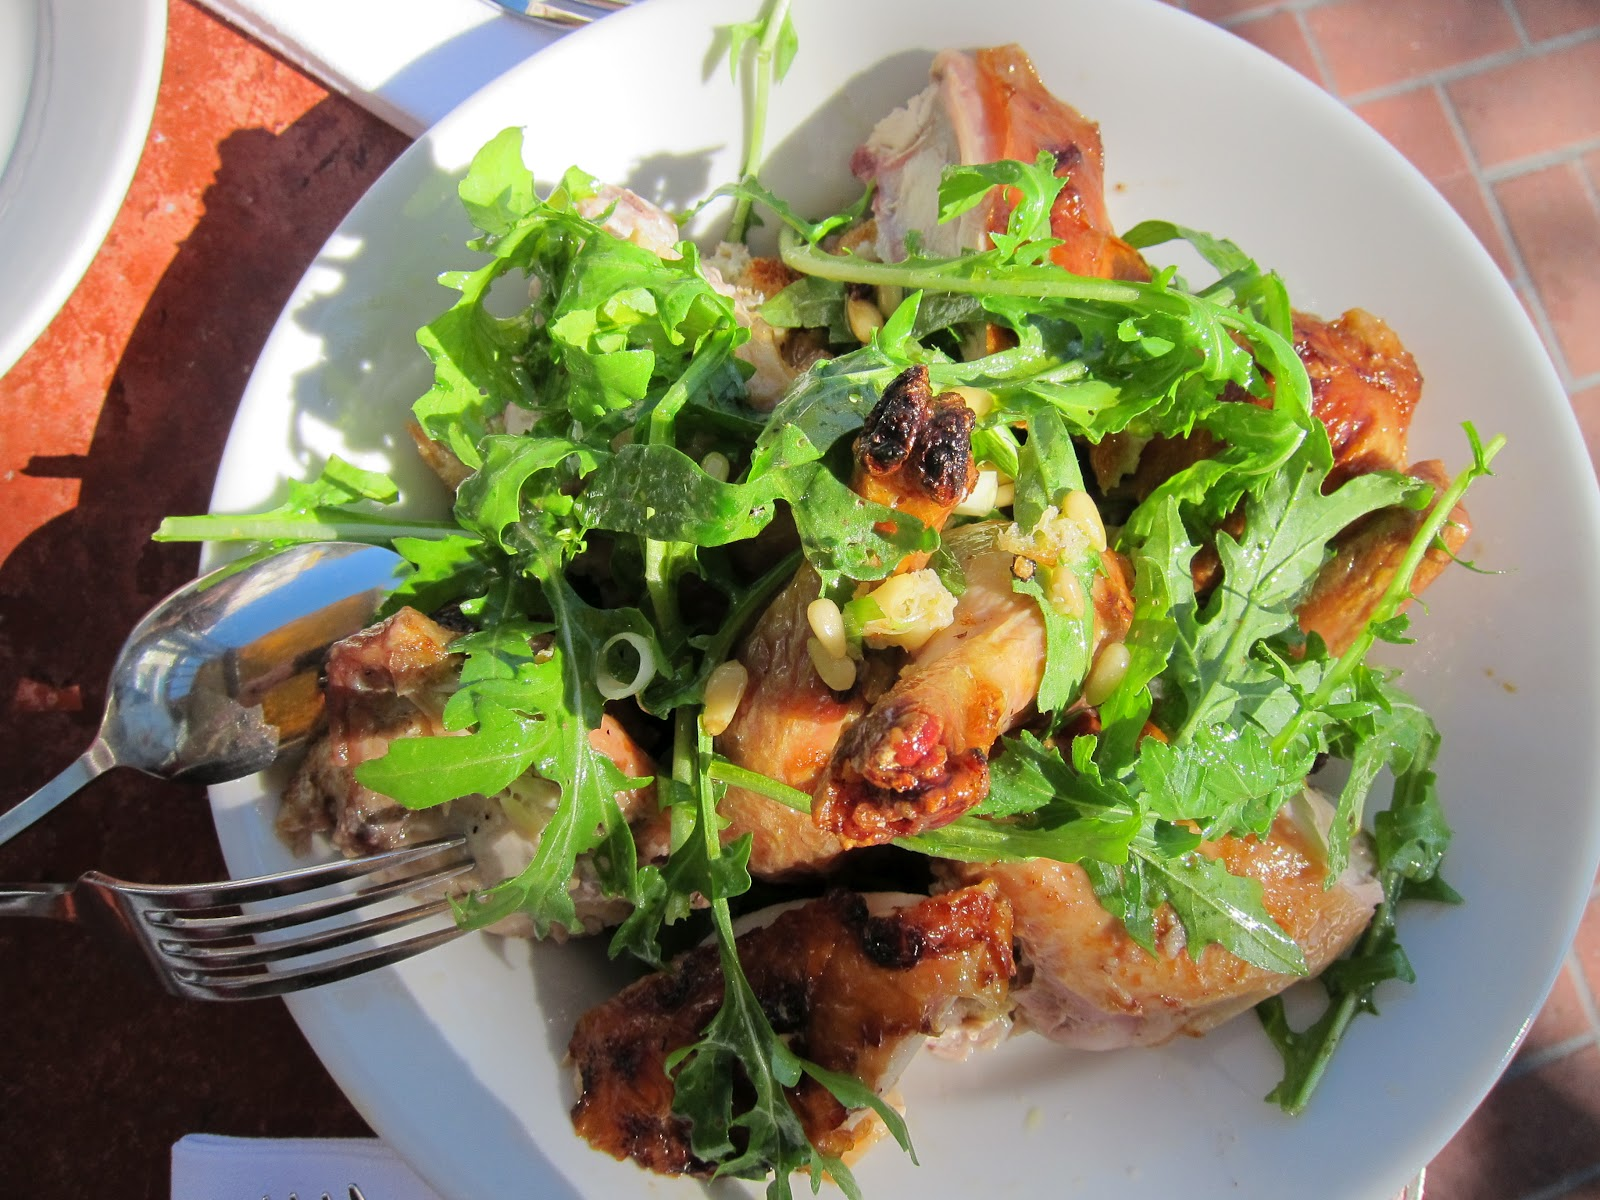 THE BIG EAT: (2) Roasted Chicken and Bread Salad @ Zuni Cafe